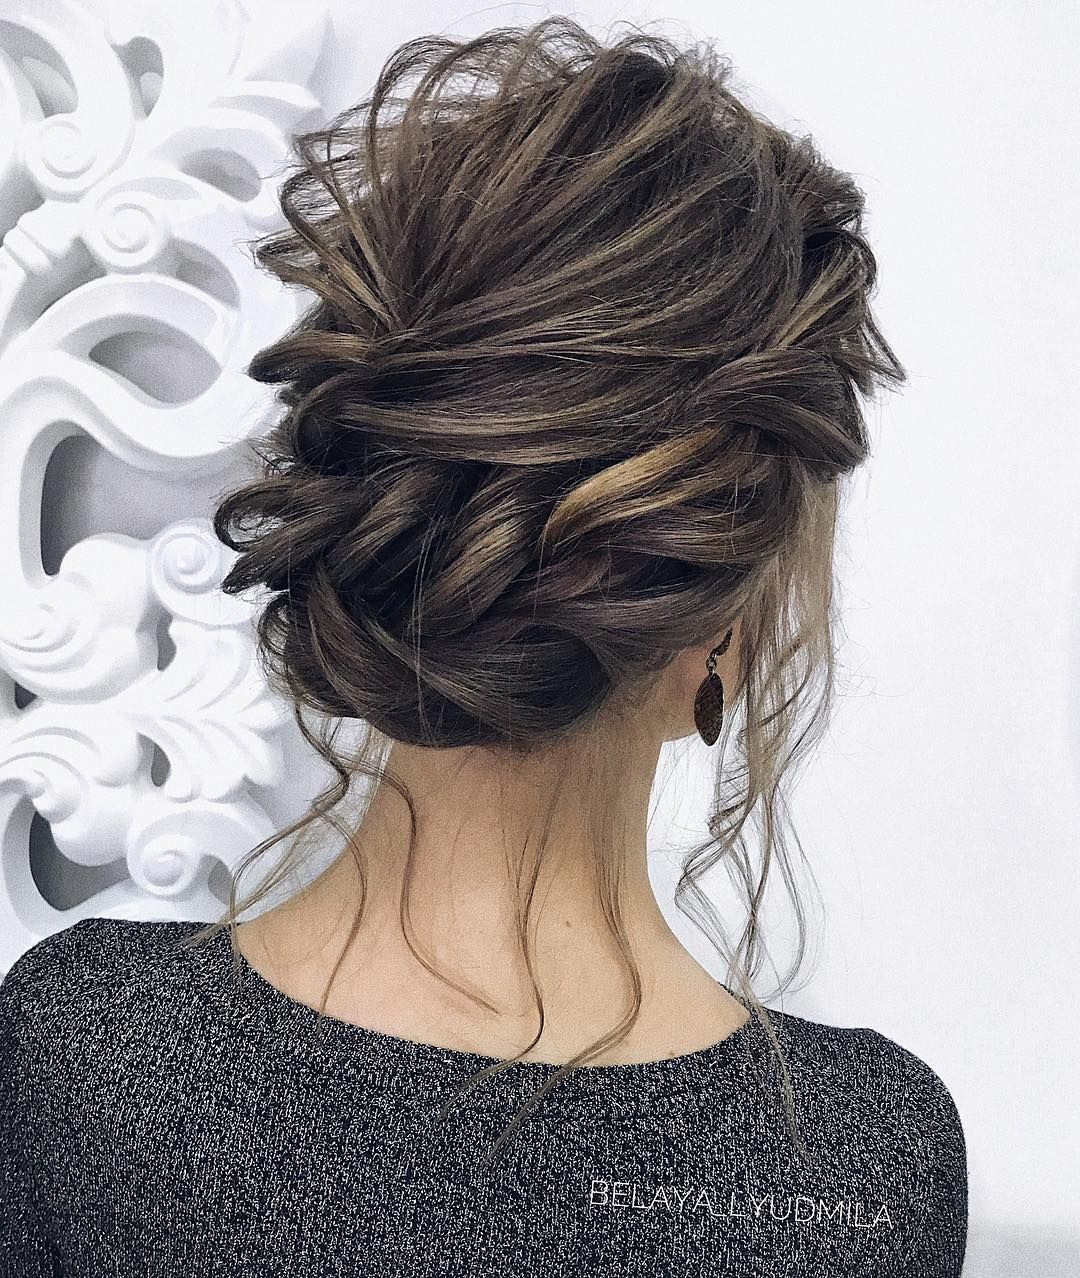 35 gorgeous updo wedding hairstyle inspiration , braids ,braided updo hairstyles ,braided ponytails ,wedding updo, textured braids #hairstyle #hair #braids #updo